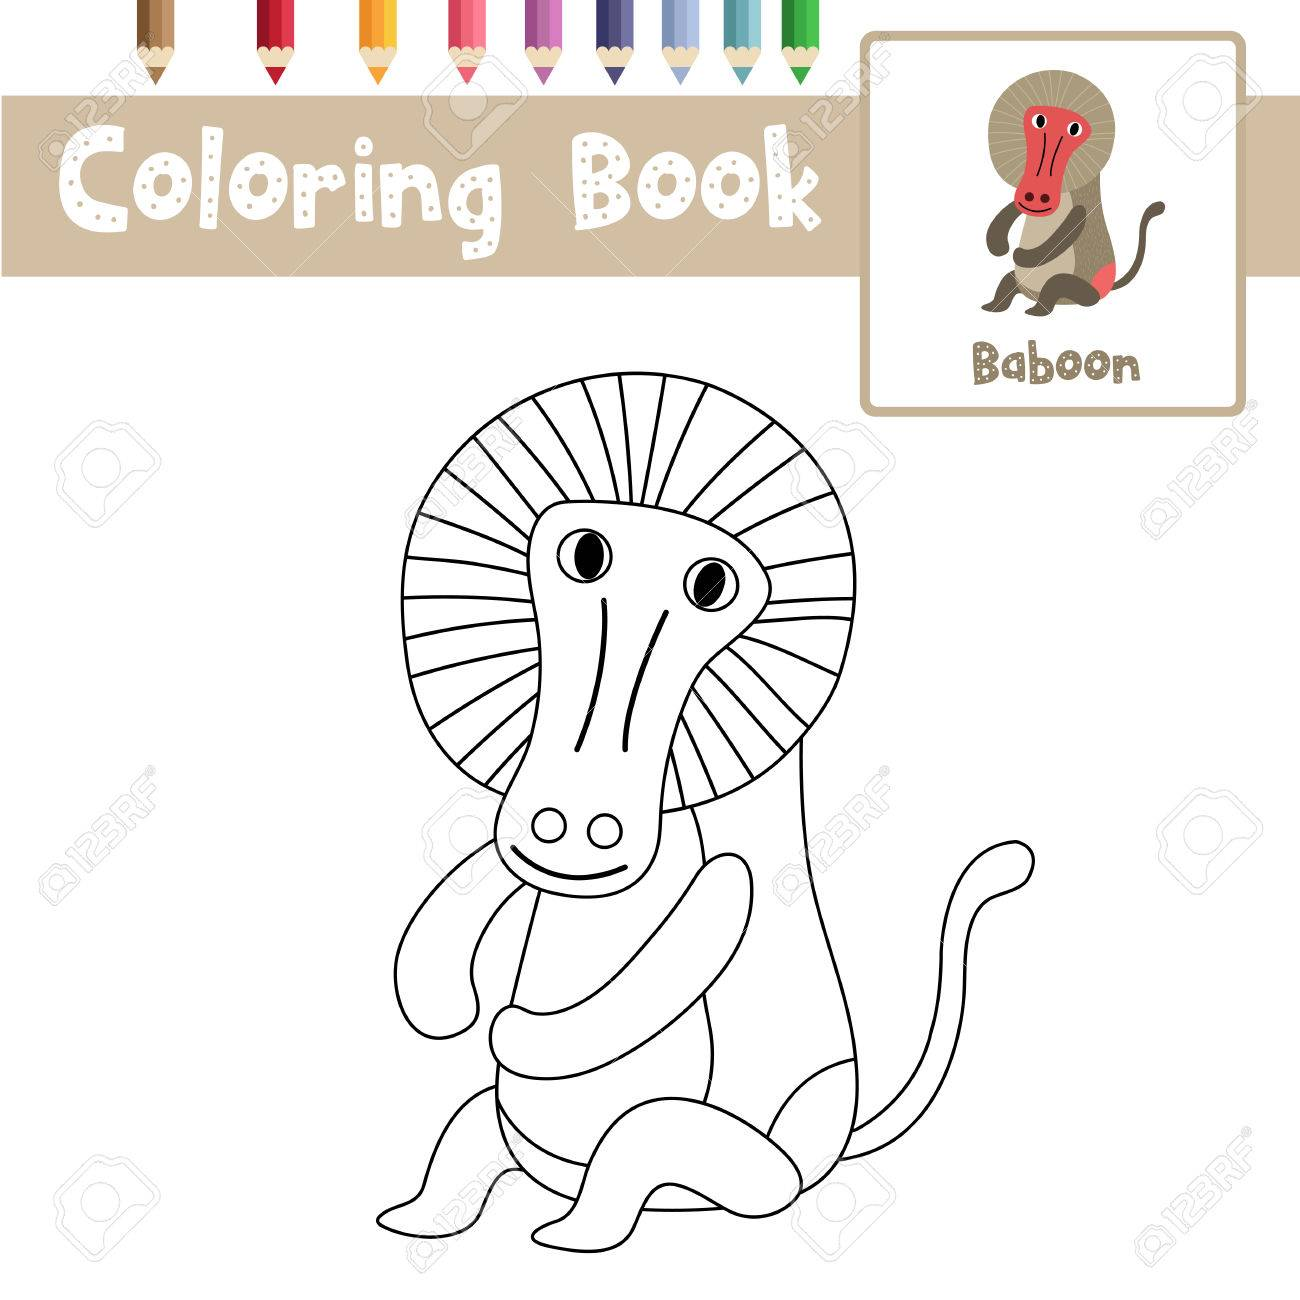 Coloring Page Of Sitting Baboon Animals For Preschool Kids Activity  Educational Worksheet. Vector Illustration.